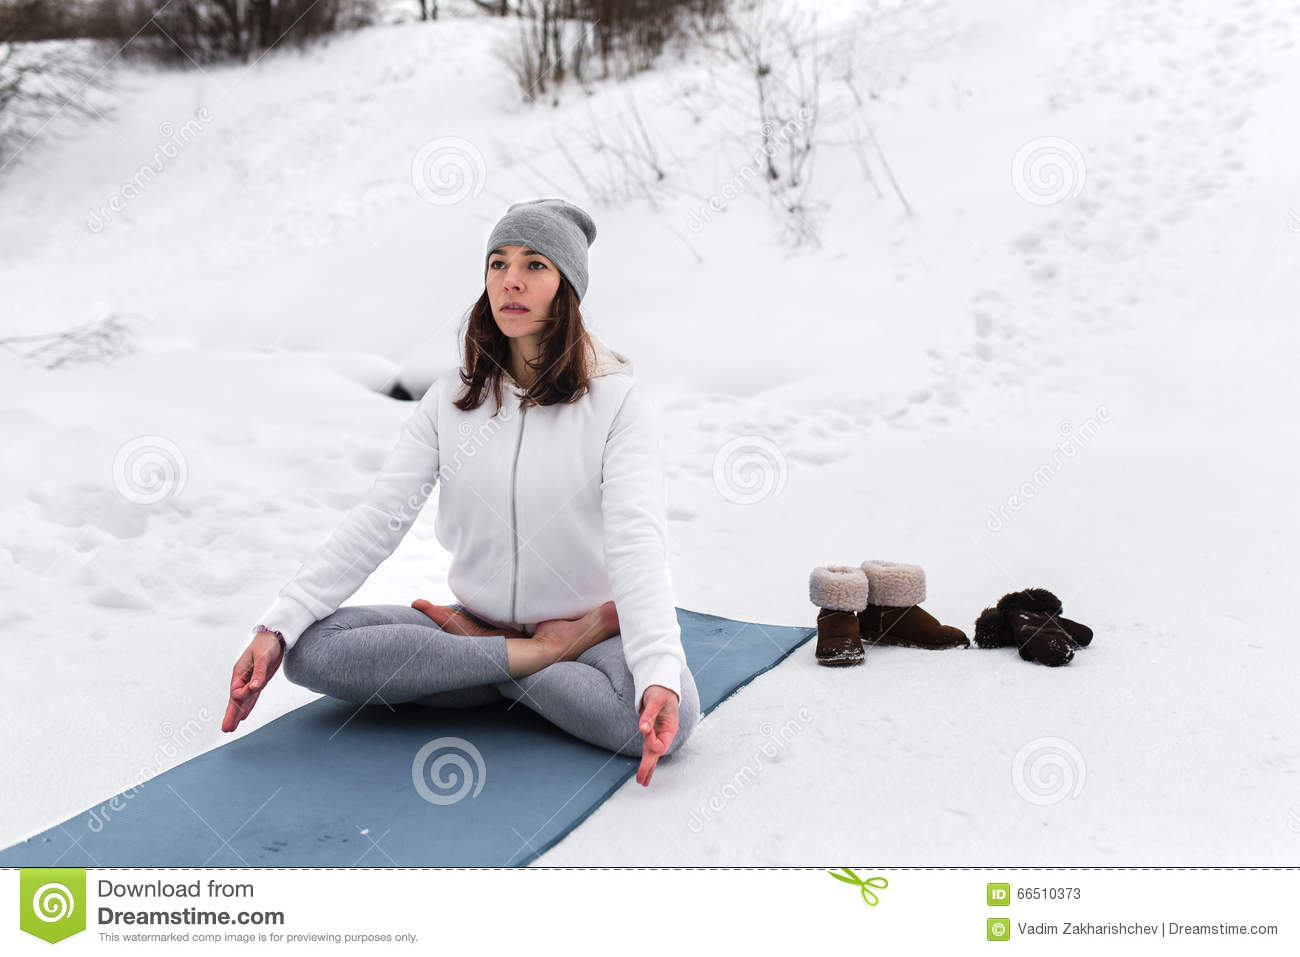 https://thumbs.dreamstime.com/z/winter-yoga-session-beautiful-place-young-athletic-woman-doing-woods-girl-engaged-fitness-park-66510373.jpg